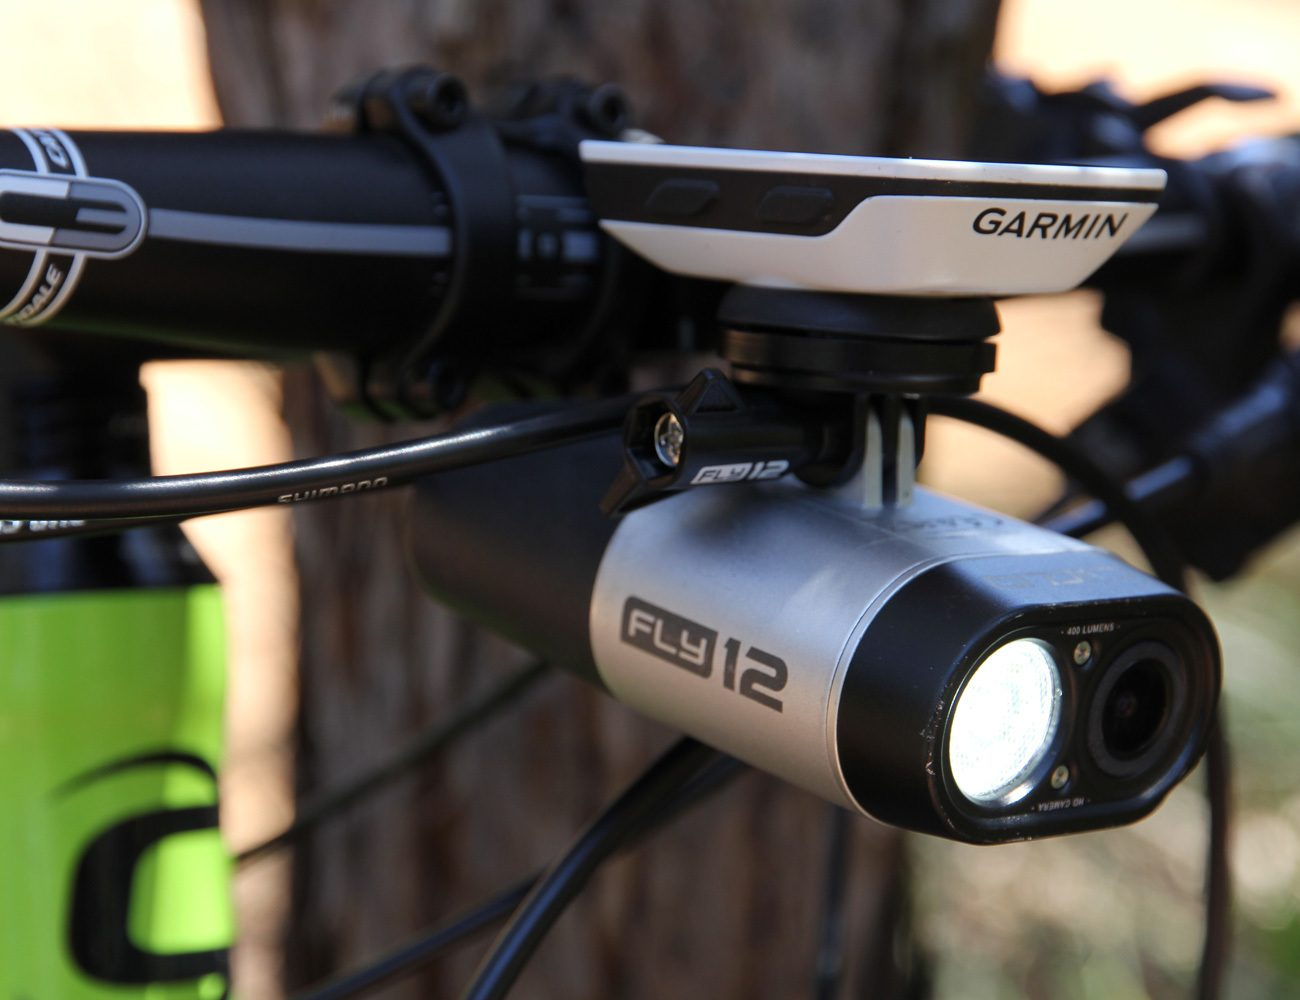 Duo Mount – Highly Compatible And Durable Bike Mount